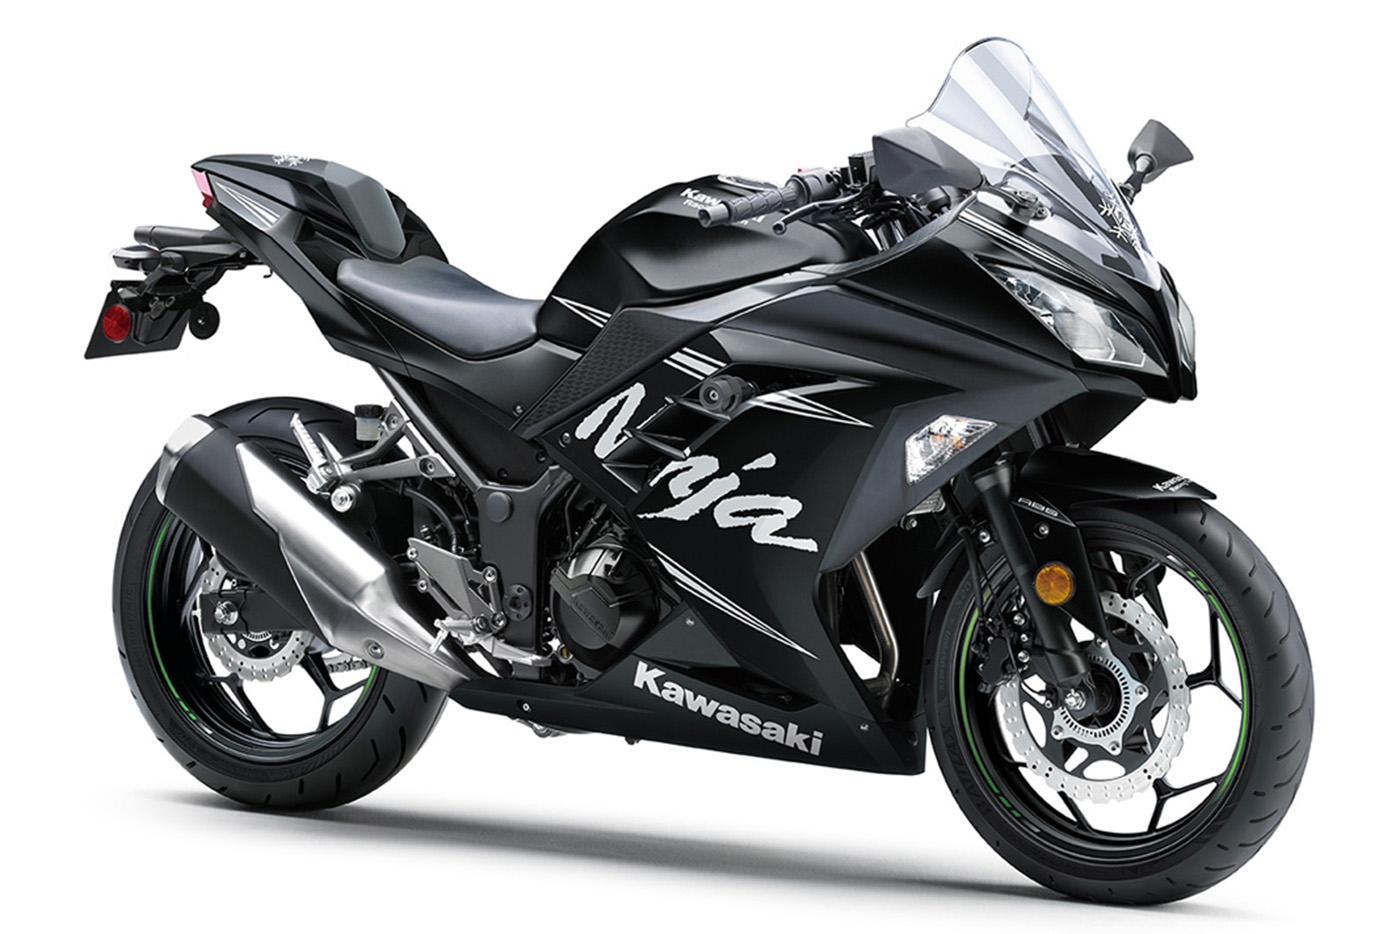 2017-kawasaki-ninja-300-winter-test-edition-front-three-quarter-studio.jpg